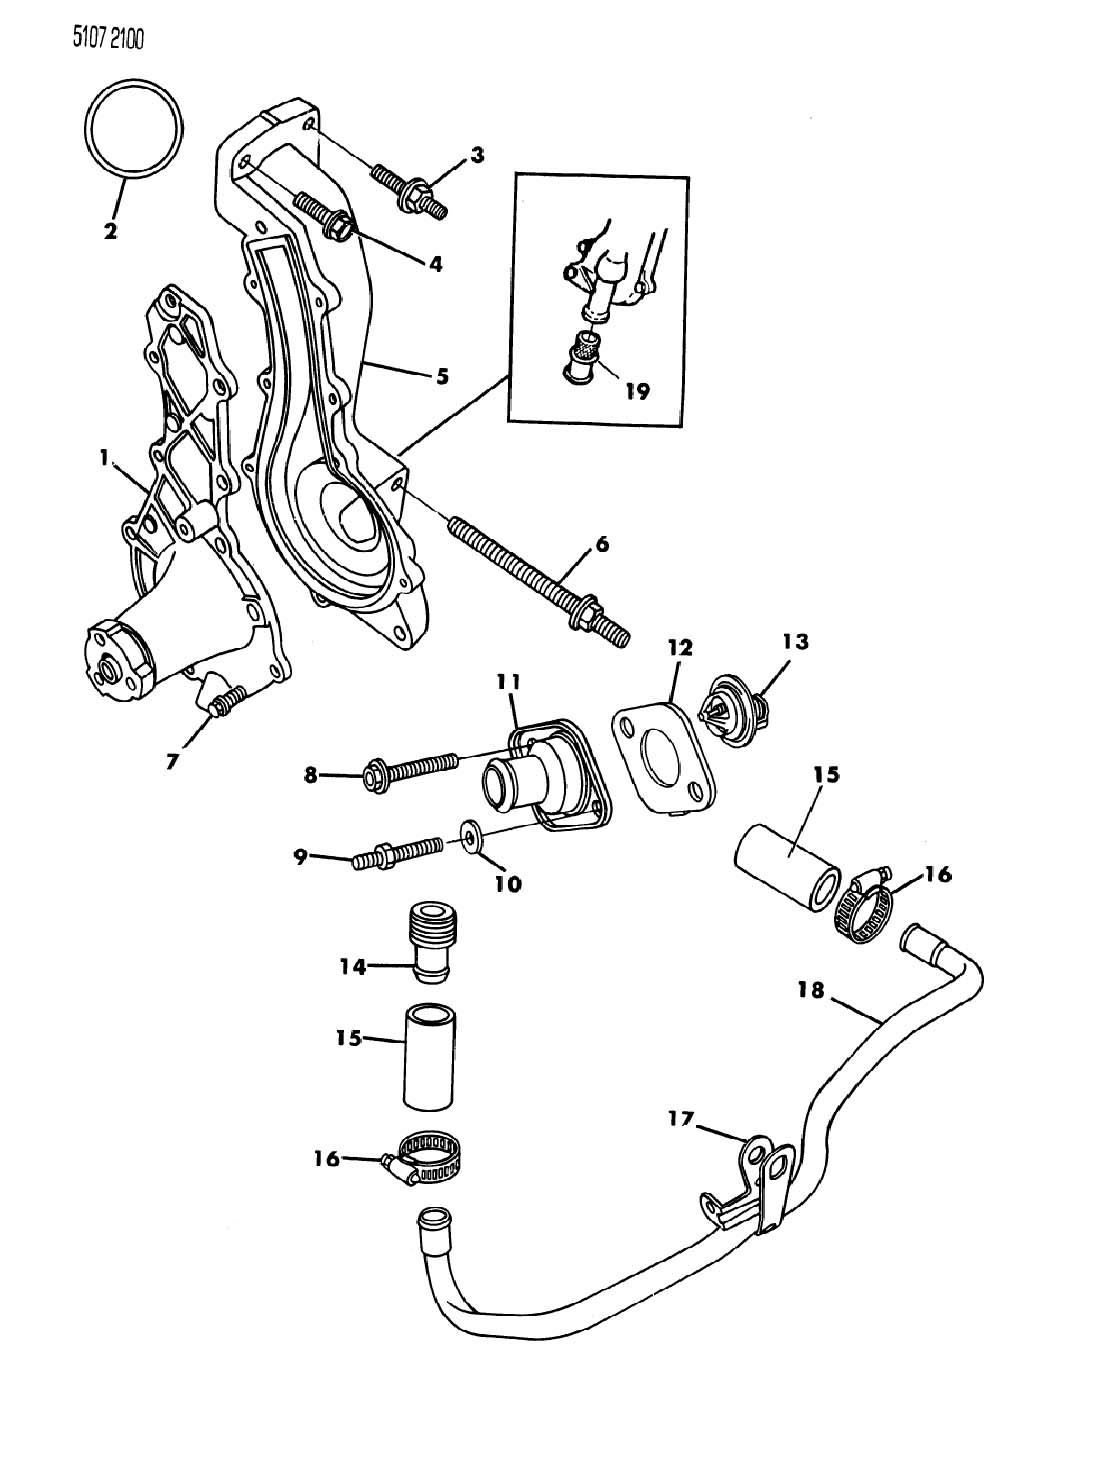 Chrysler Lebaron Water Pump And Related Parts 2 2l Engine